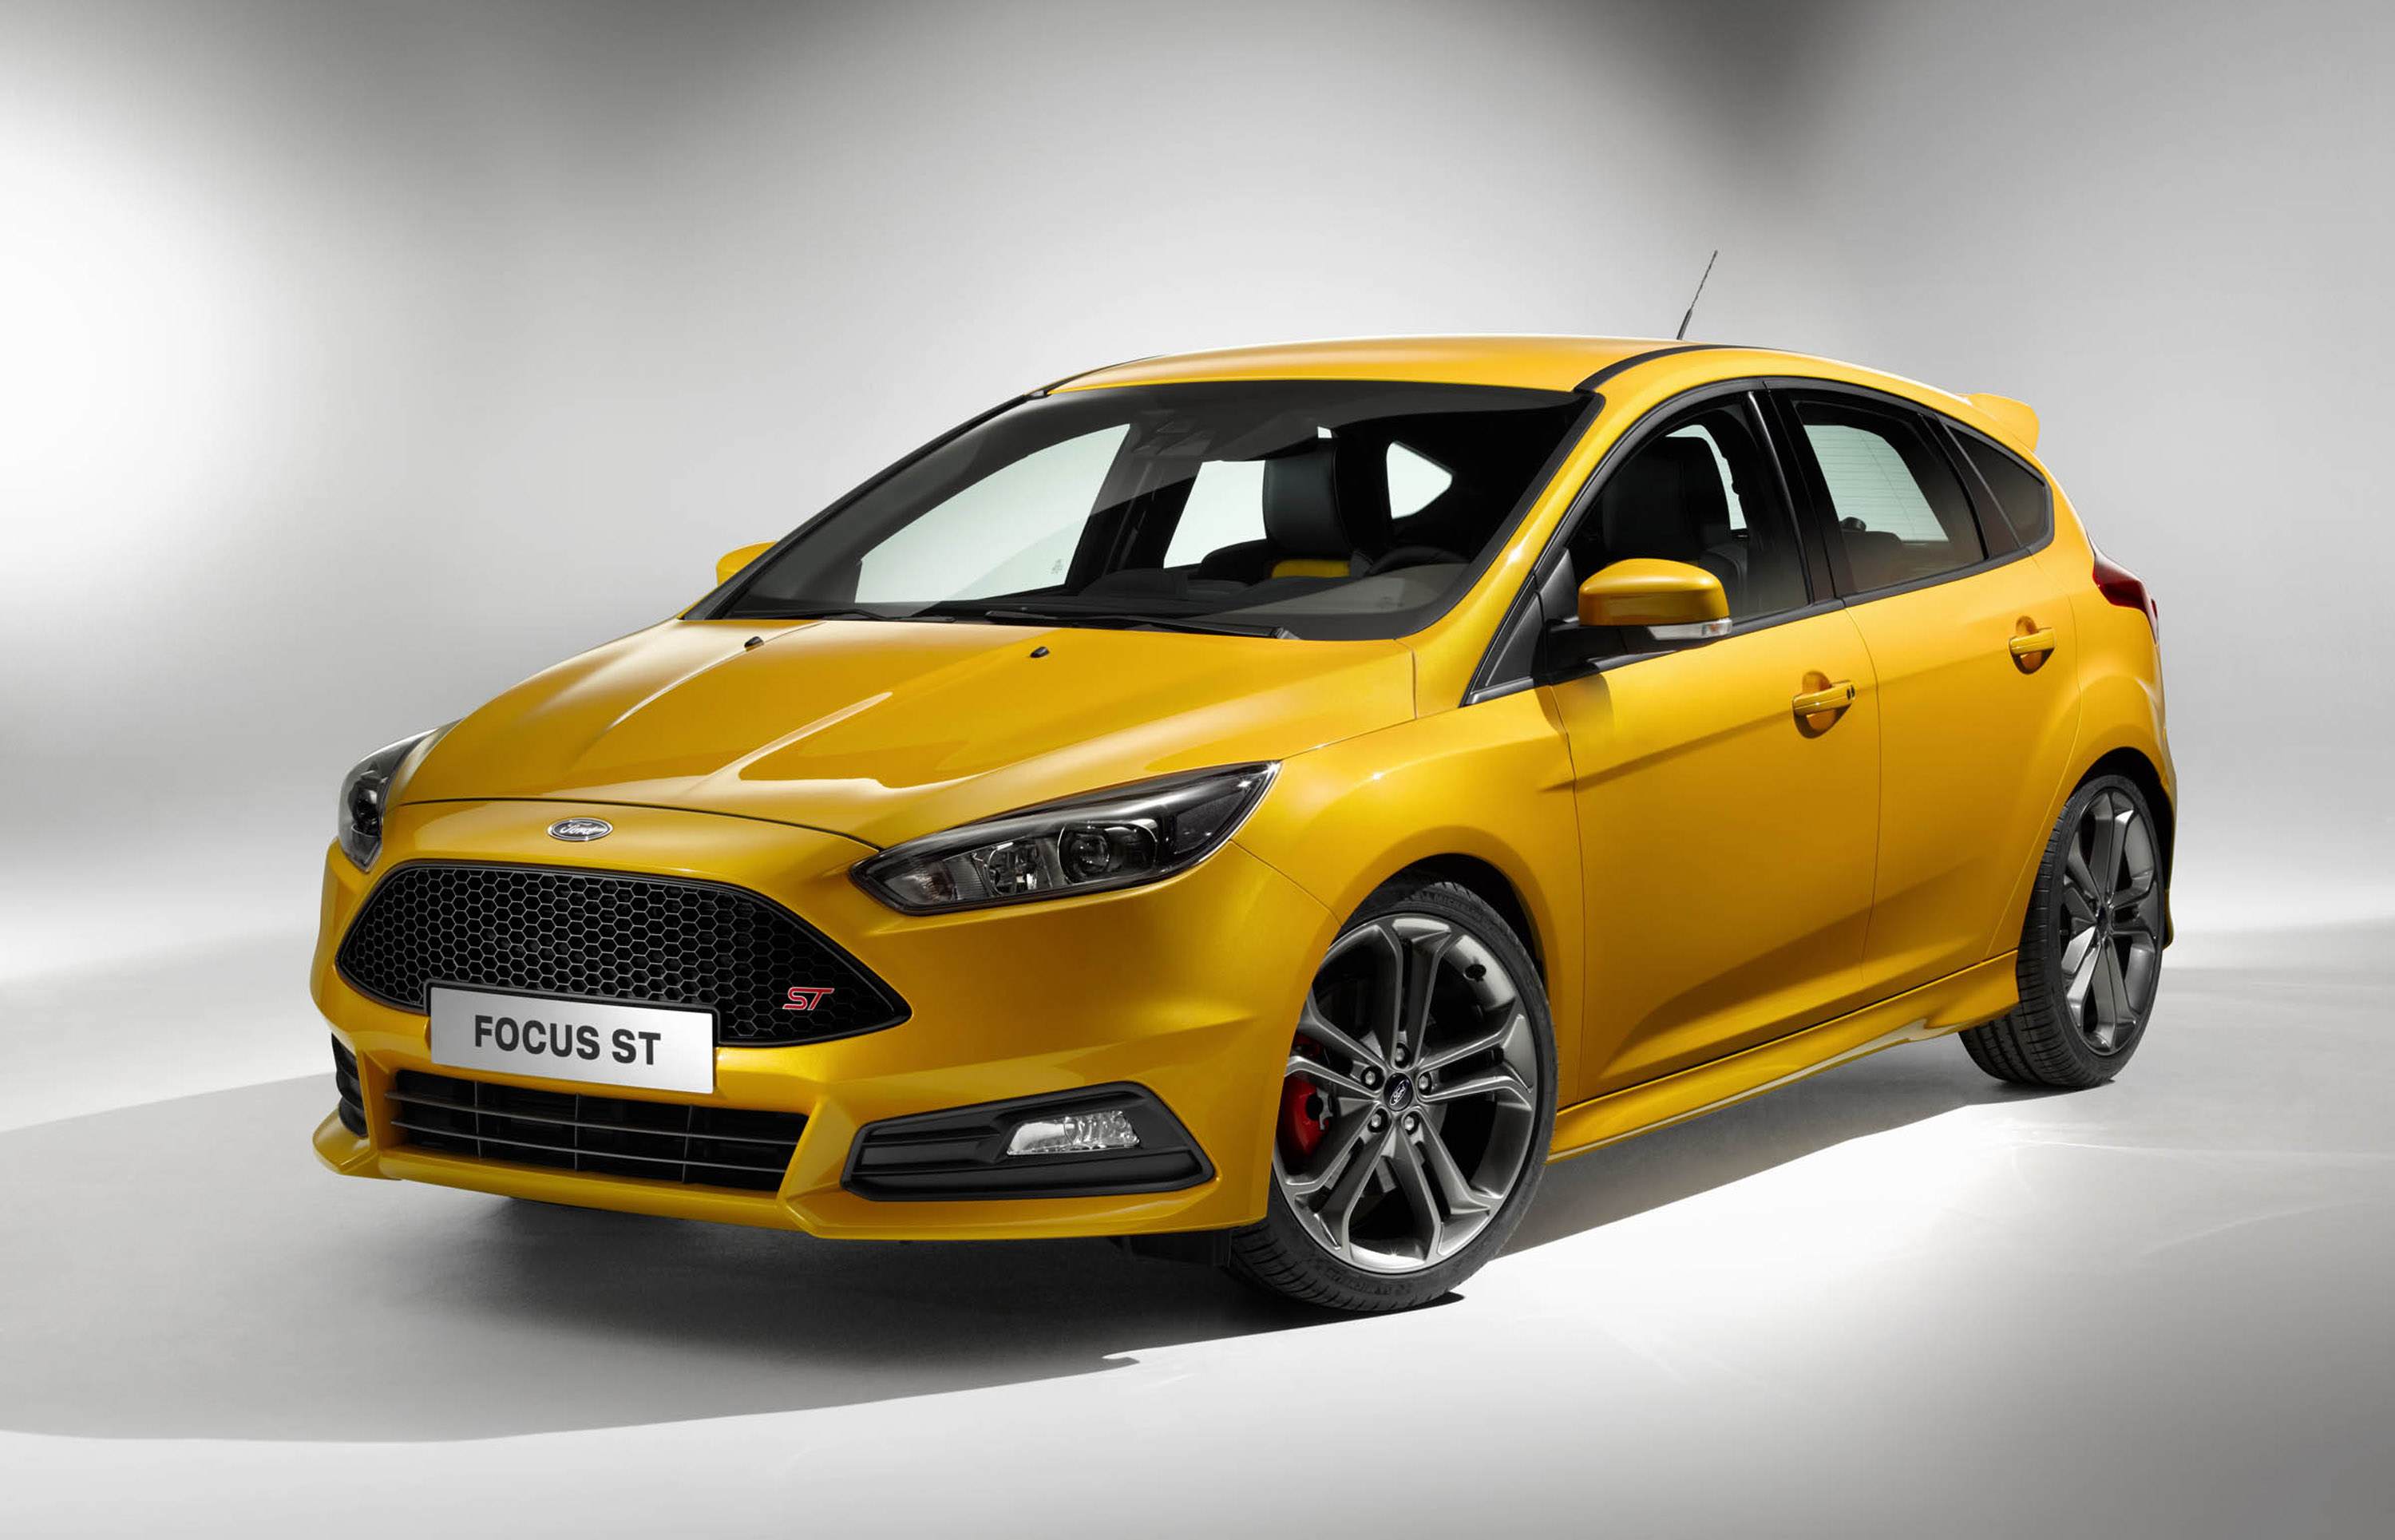 2015 ford focus st uk price. Black Bedroom Furniture Sets. Home Design Ideas